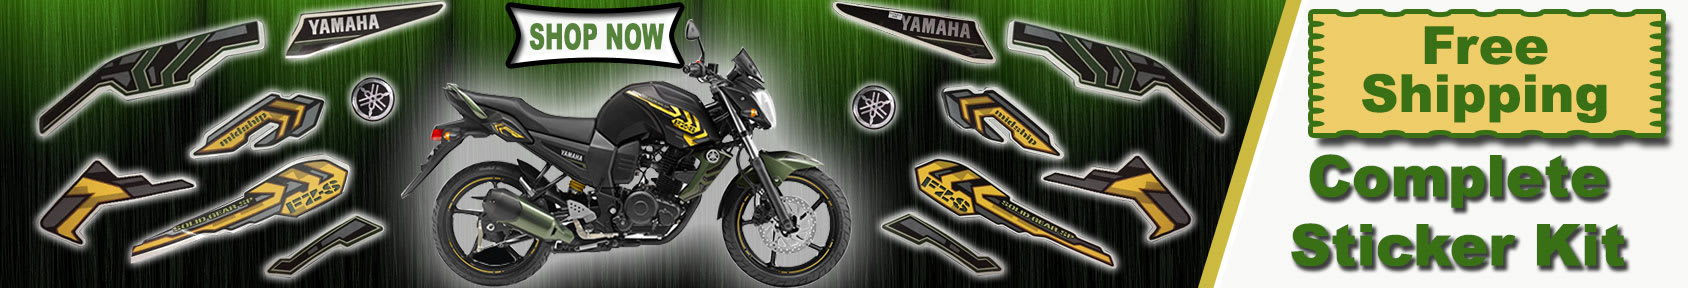 Special offers on Genuine Motorcycle Spare Parts And Accessories - Get Free shipping on complete sticker kit